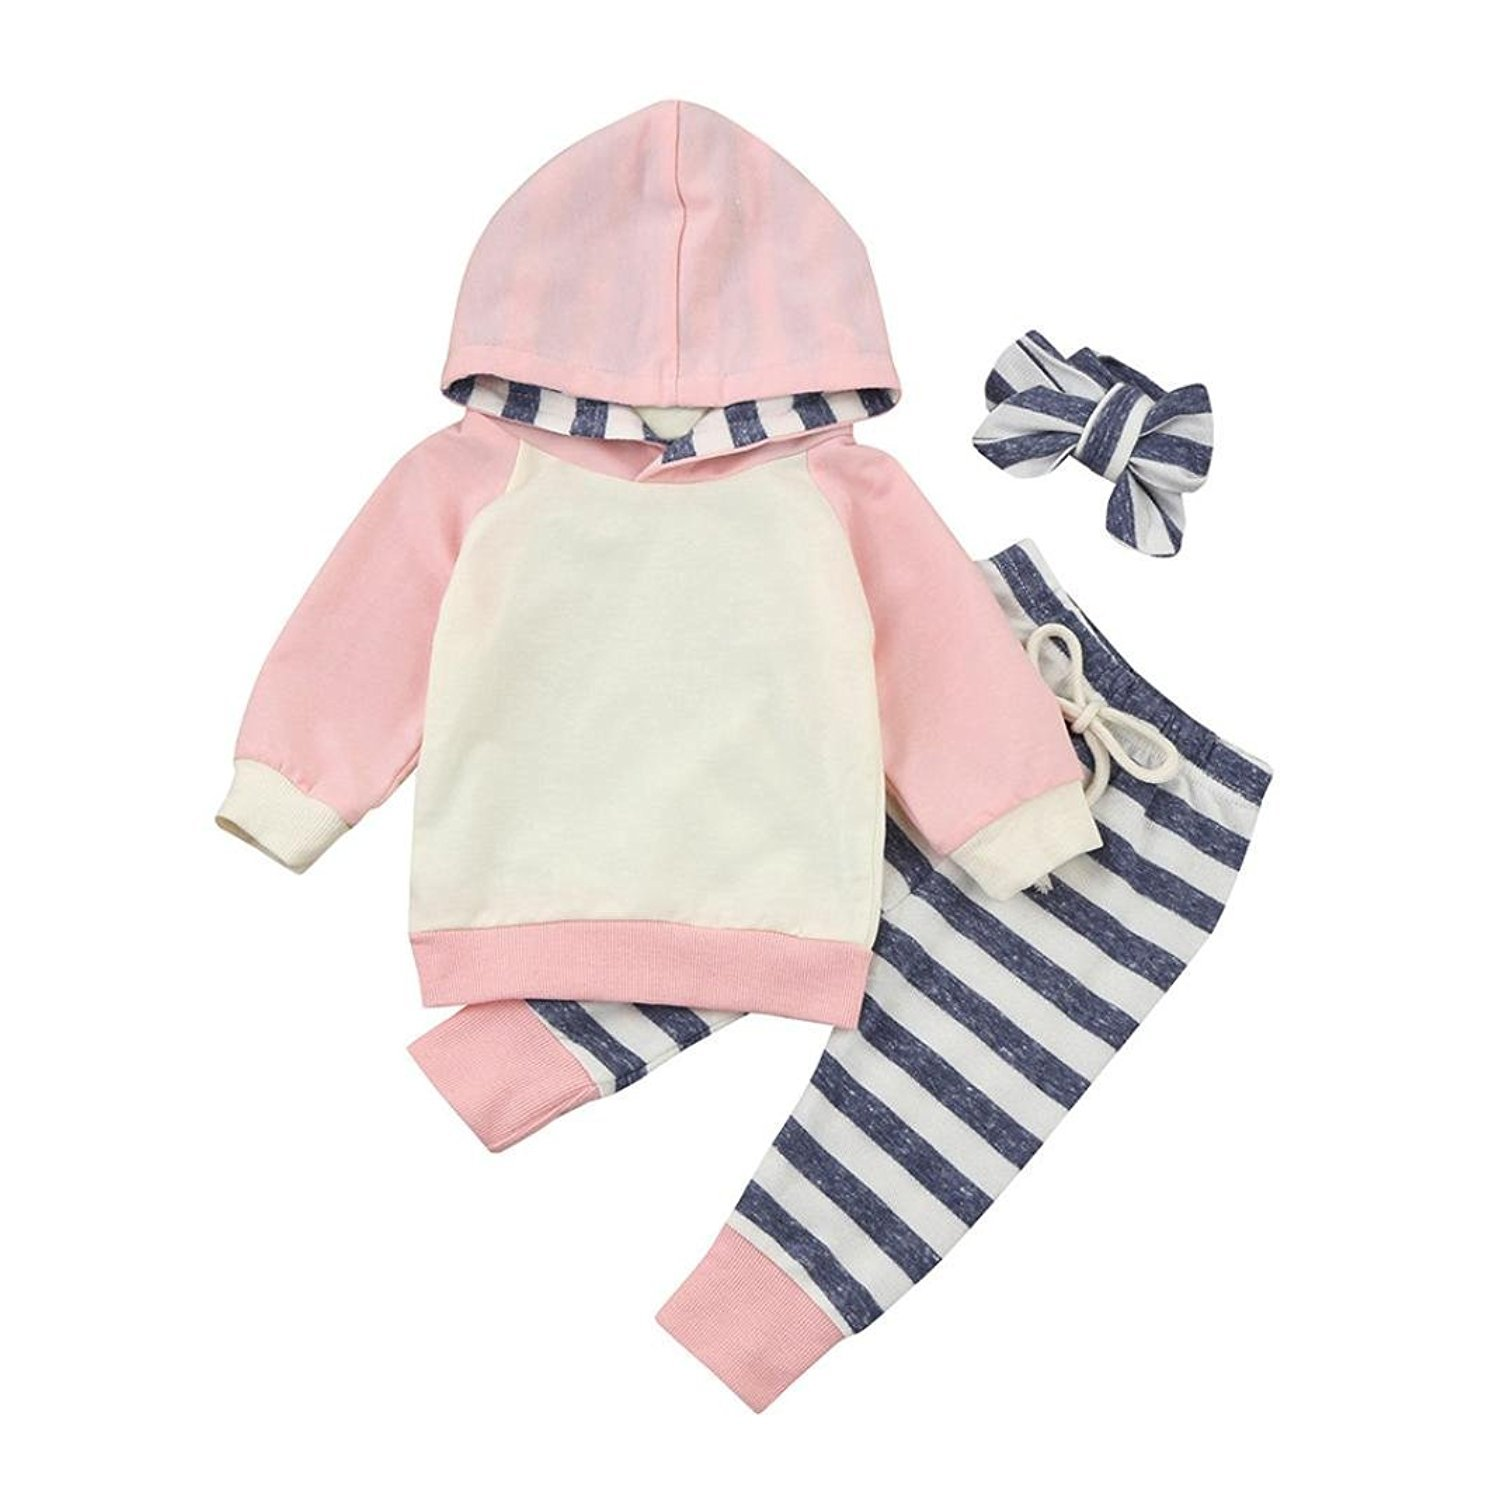 Baby Girls' Clothes Long Sleeve Hoodie Tops, Striped Pants+Headband Outfits Set (18-24 Months)